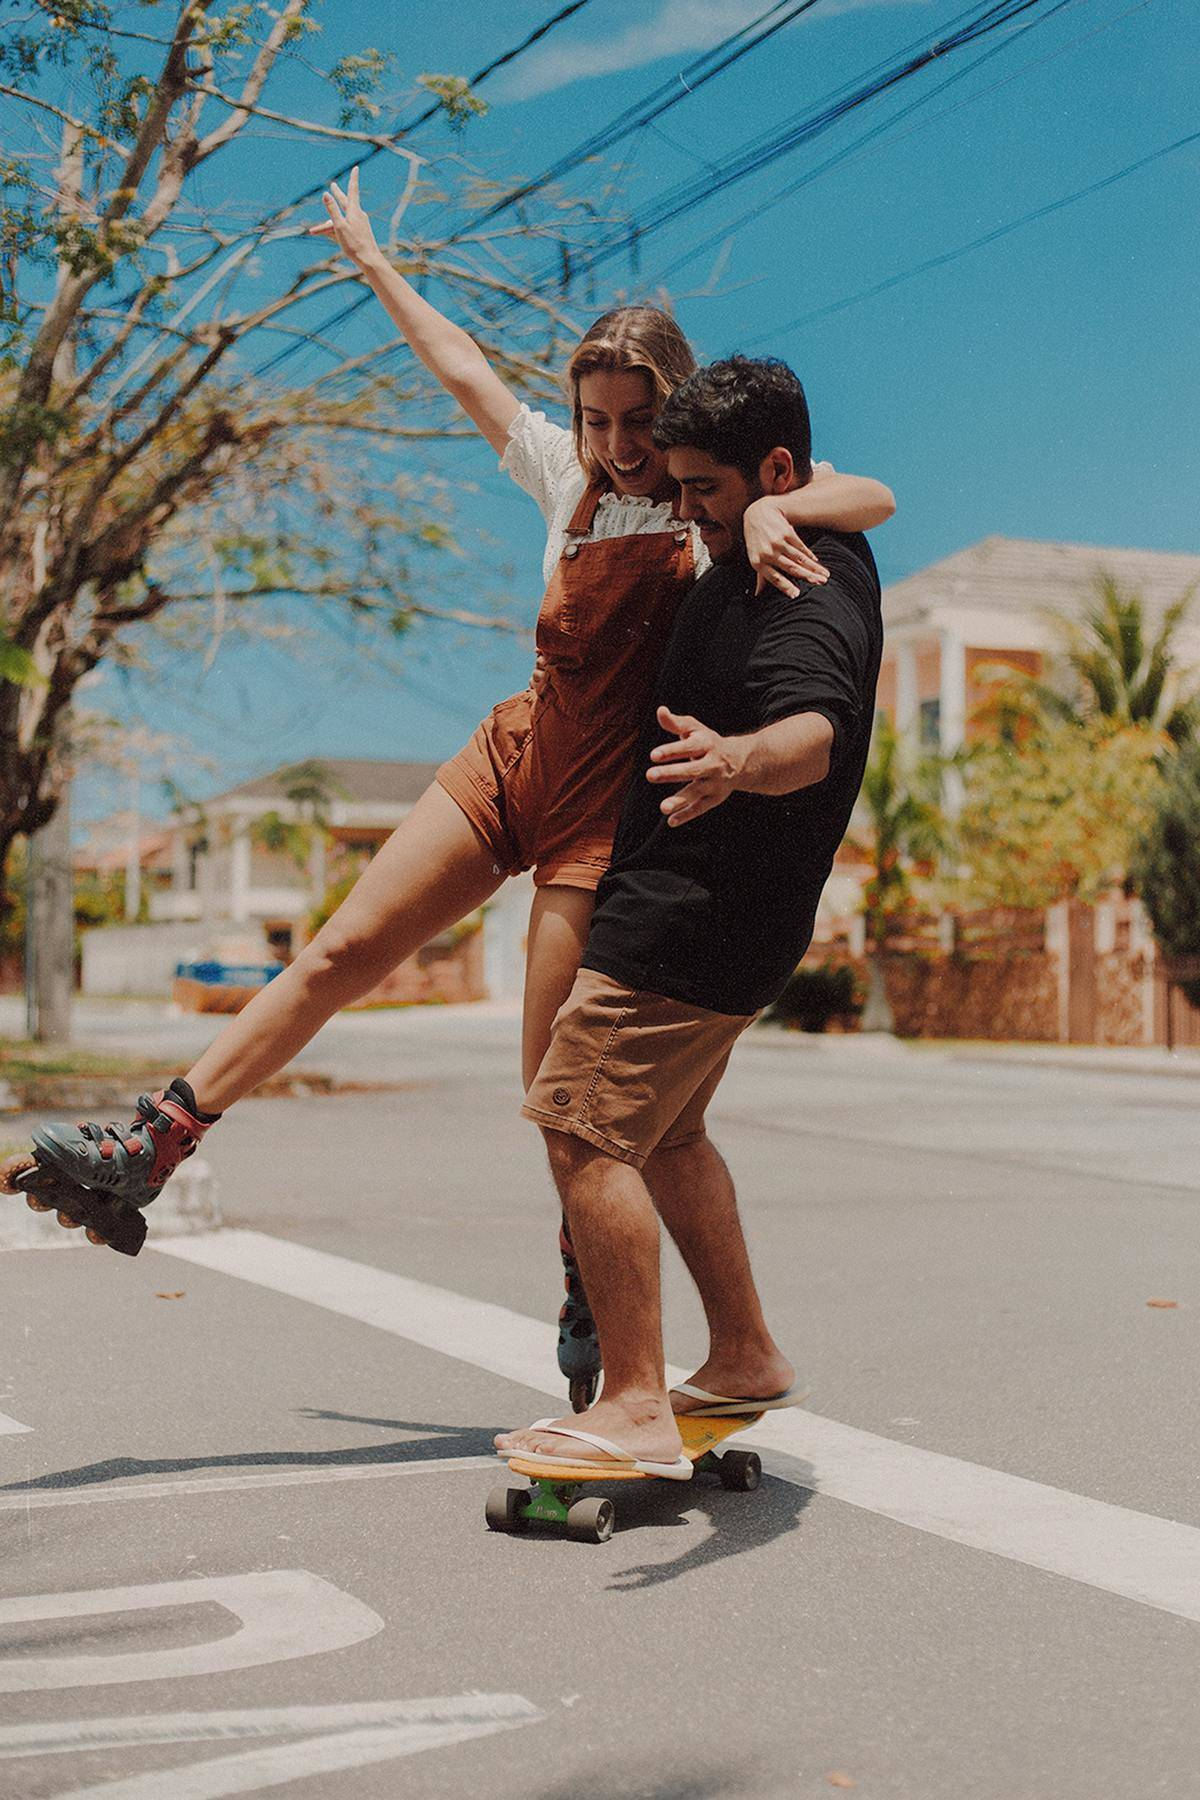 couple playing on a skateboard